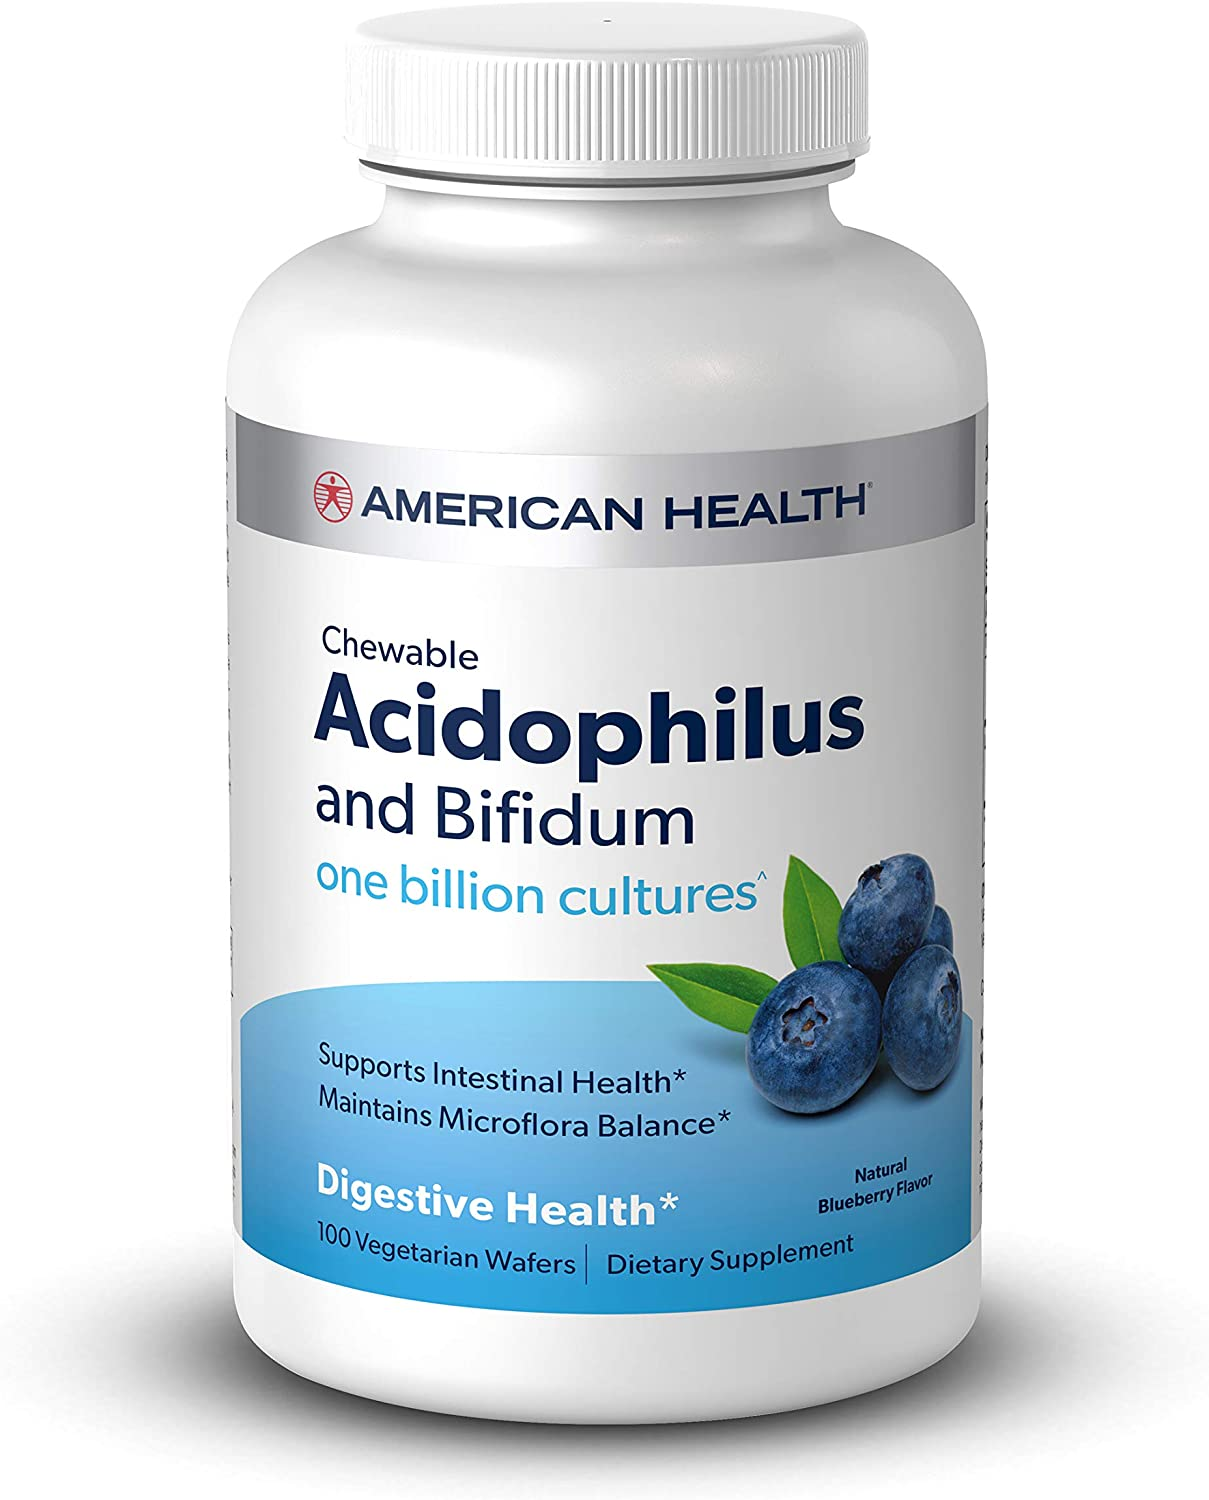 American Health Chewable Probiotic Acidophilus and Bifidum, Natural Blueberry Flavor Wafers - Supports Digestive Health, Intestinal Balance & Immune Function - Vegetarian - 100 Total Servings